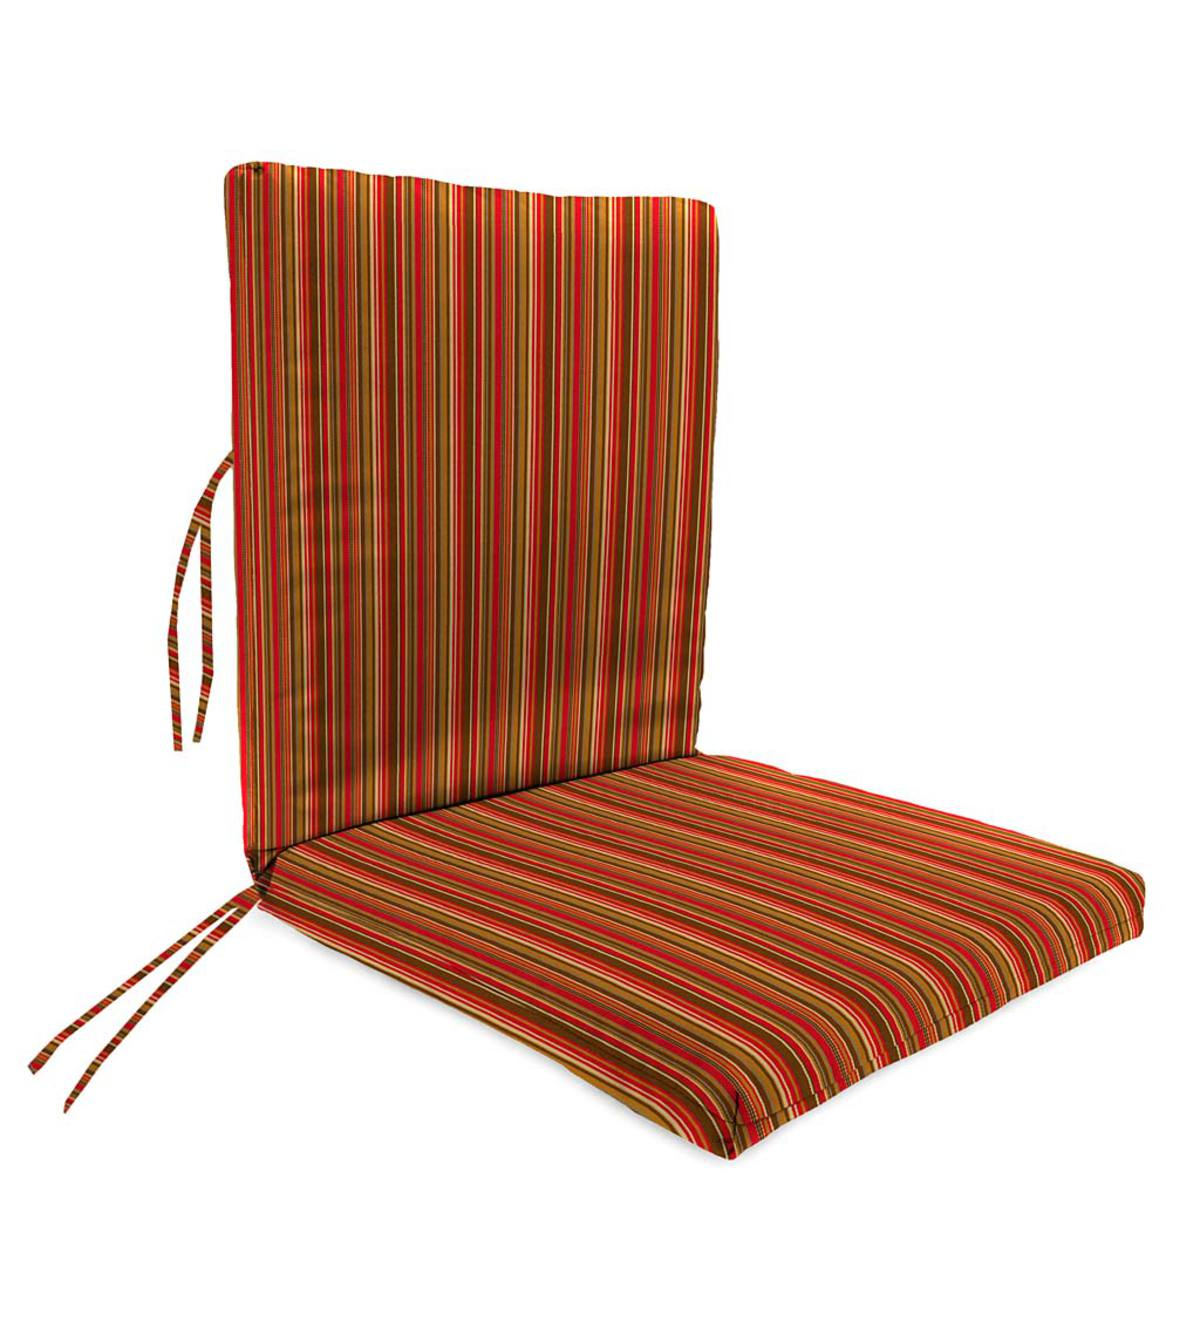 "Sunbrella Classic Large Club Chair Cushion With Ties, 44""x 22""with hinge 22""from bottom - Cherry Stripe"